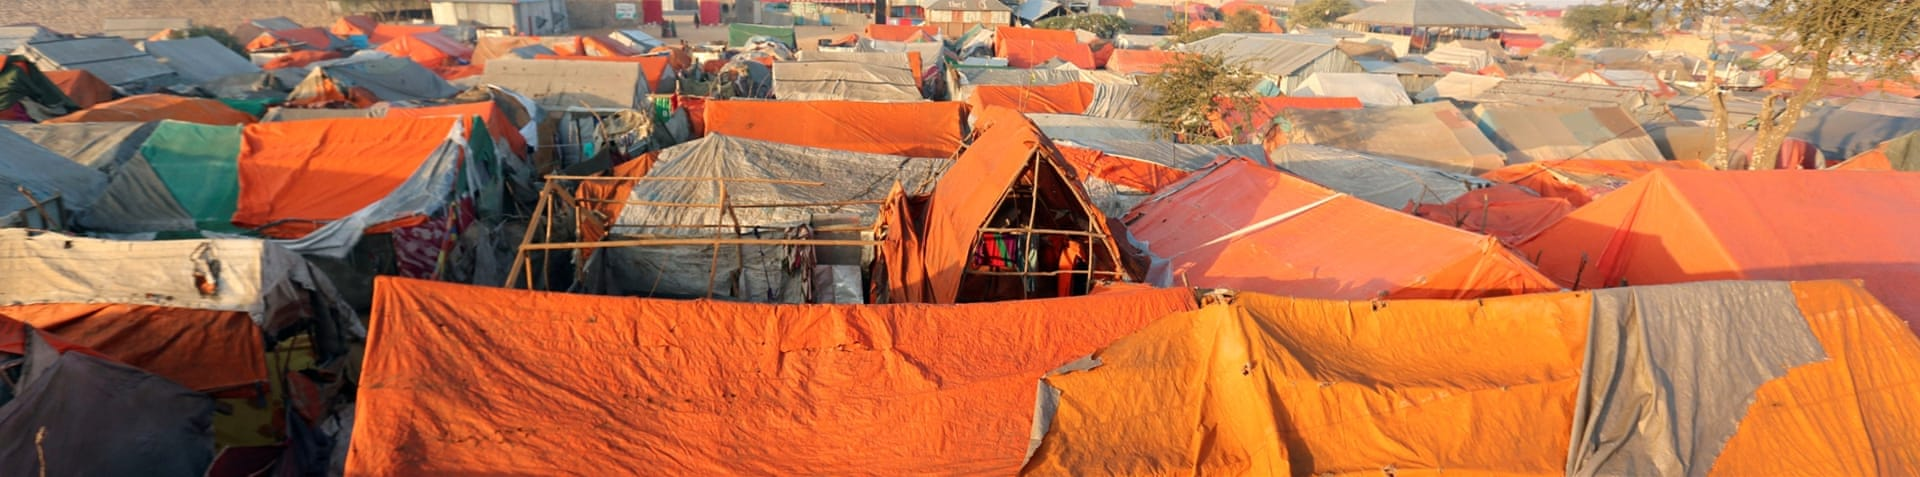 IDP camps are faced with a shortage of food amid a national disaster [Feisal Omar/Reuters]